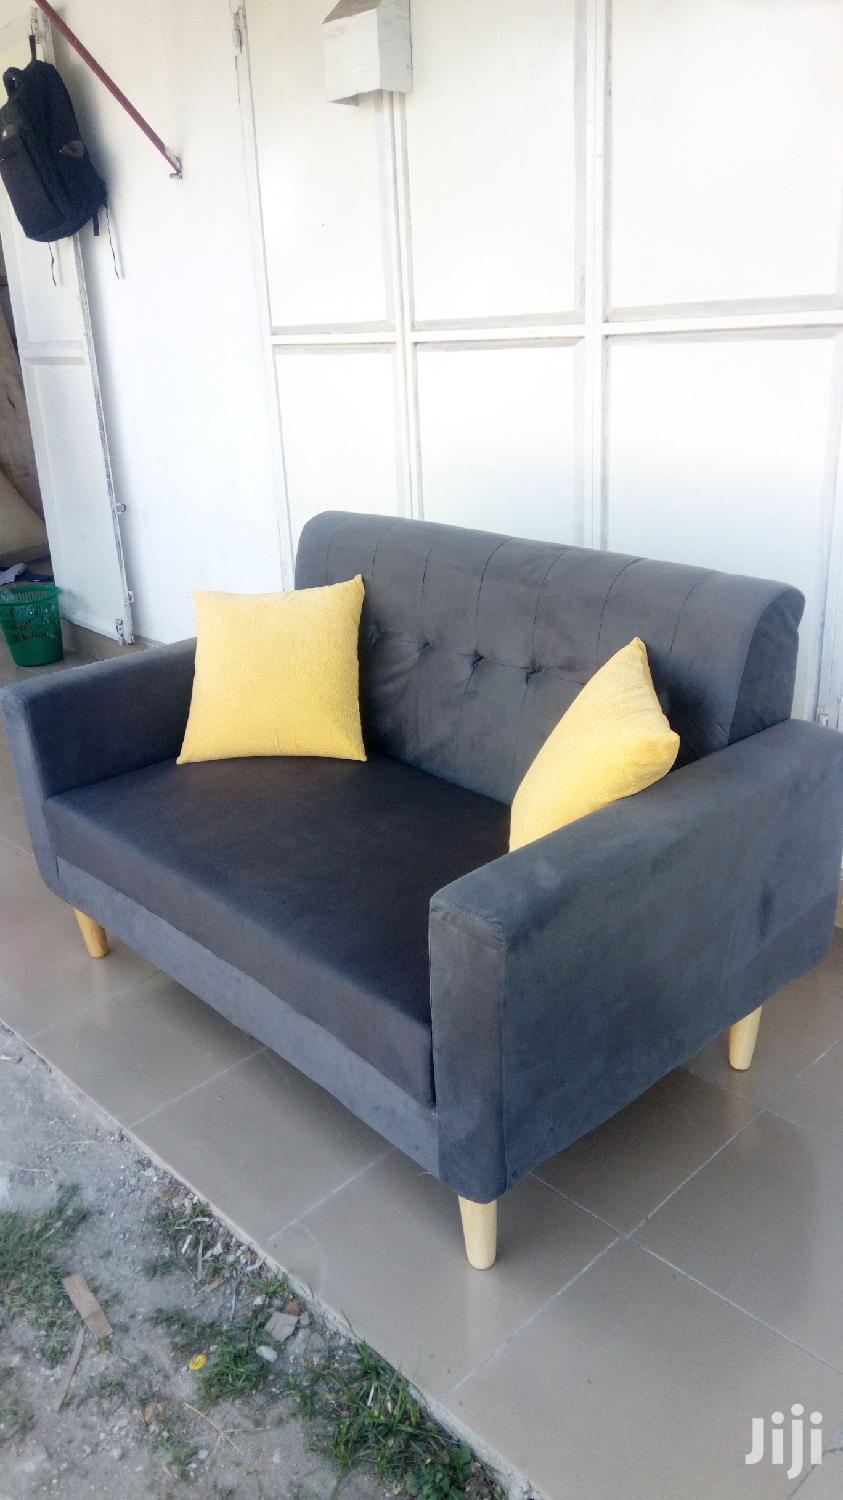 City Furniture | Furniture for sale in Kinondoni, Dar es Salaam, Tanzania